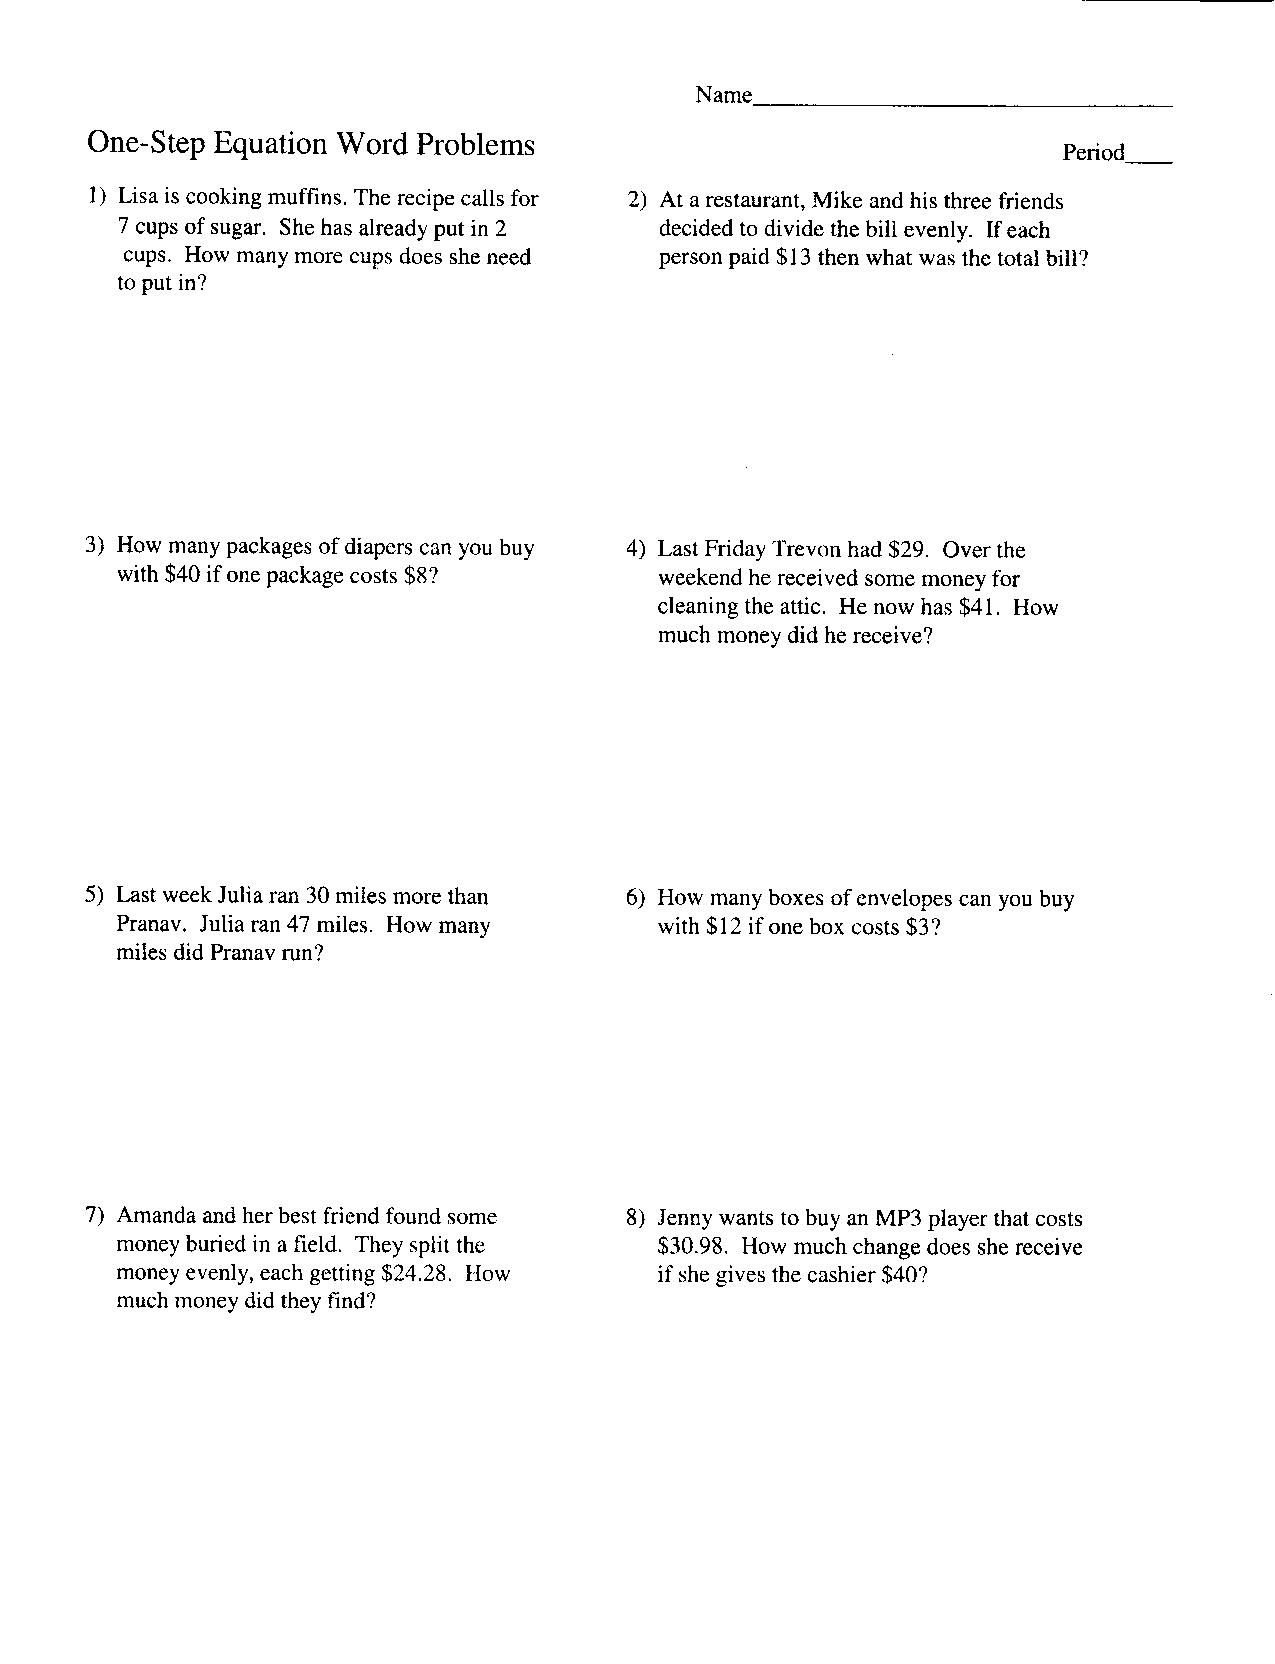 Systems Of Equations Word Problems Worksheet Answers  Yooob Together With Two Step Equations Word Problems Worksheet